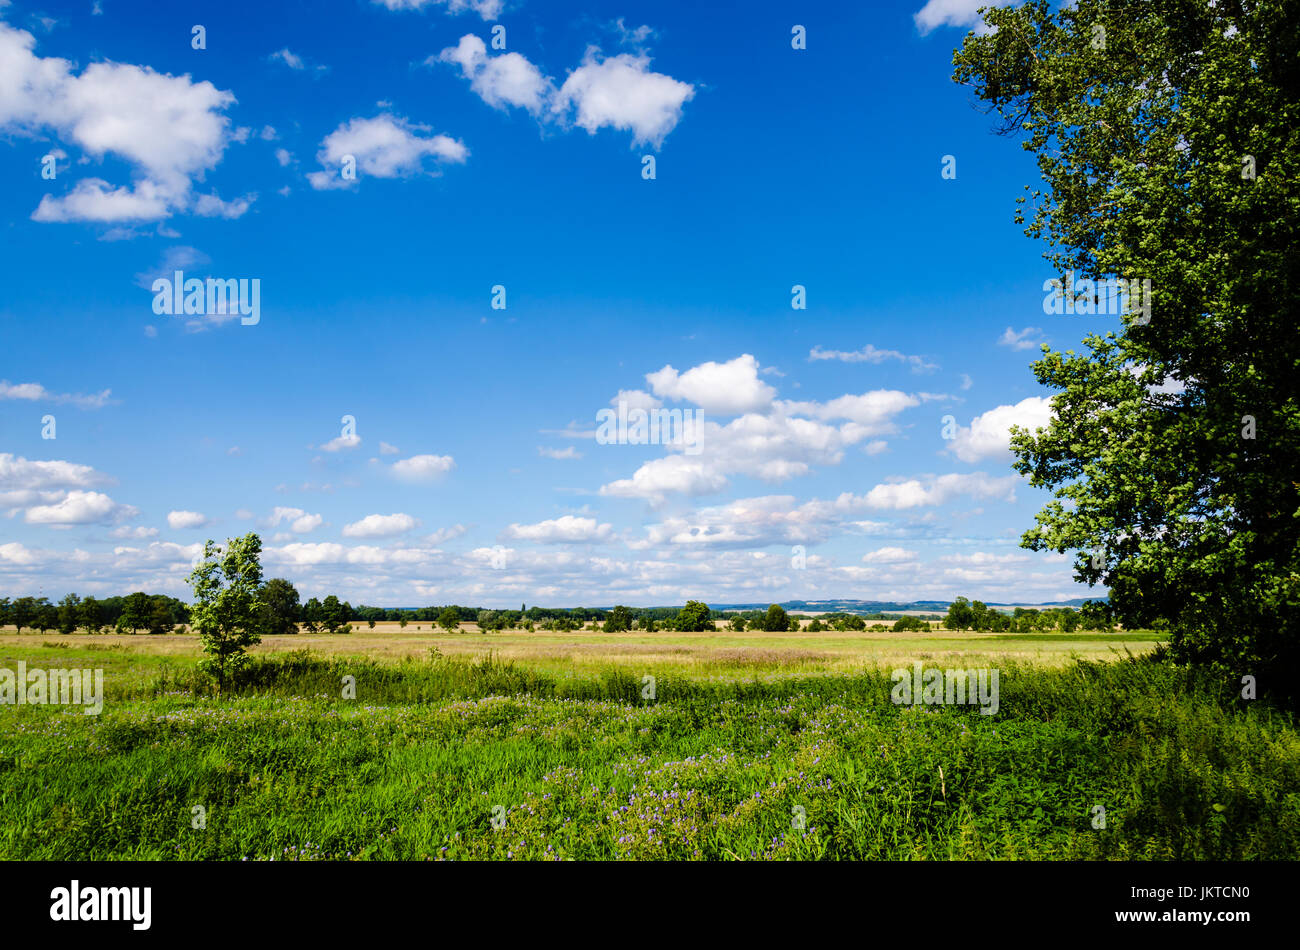 Beautiful Czech rural meadow with dark blue sky and white clouds. - Stock Image